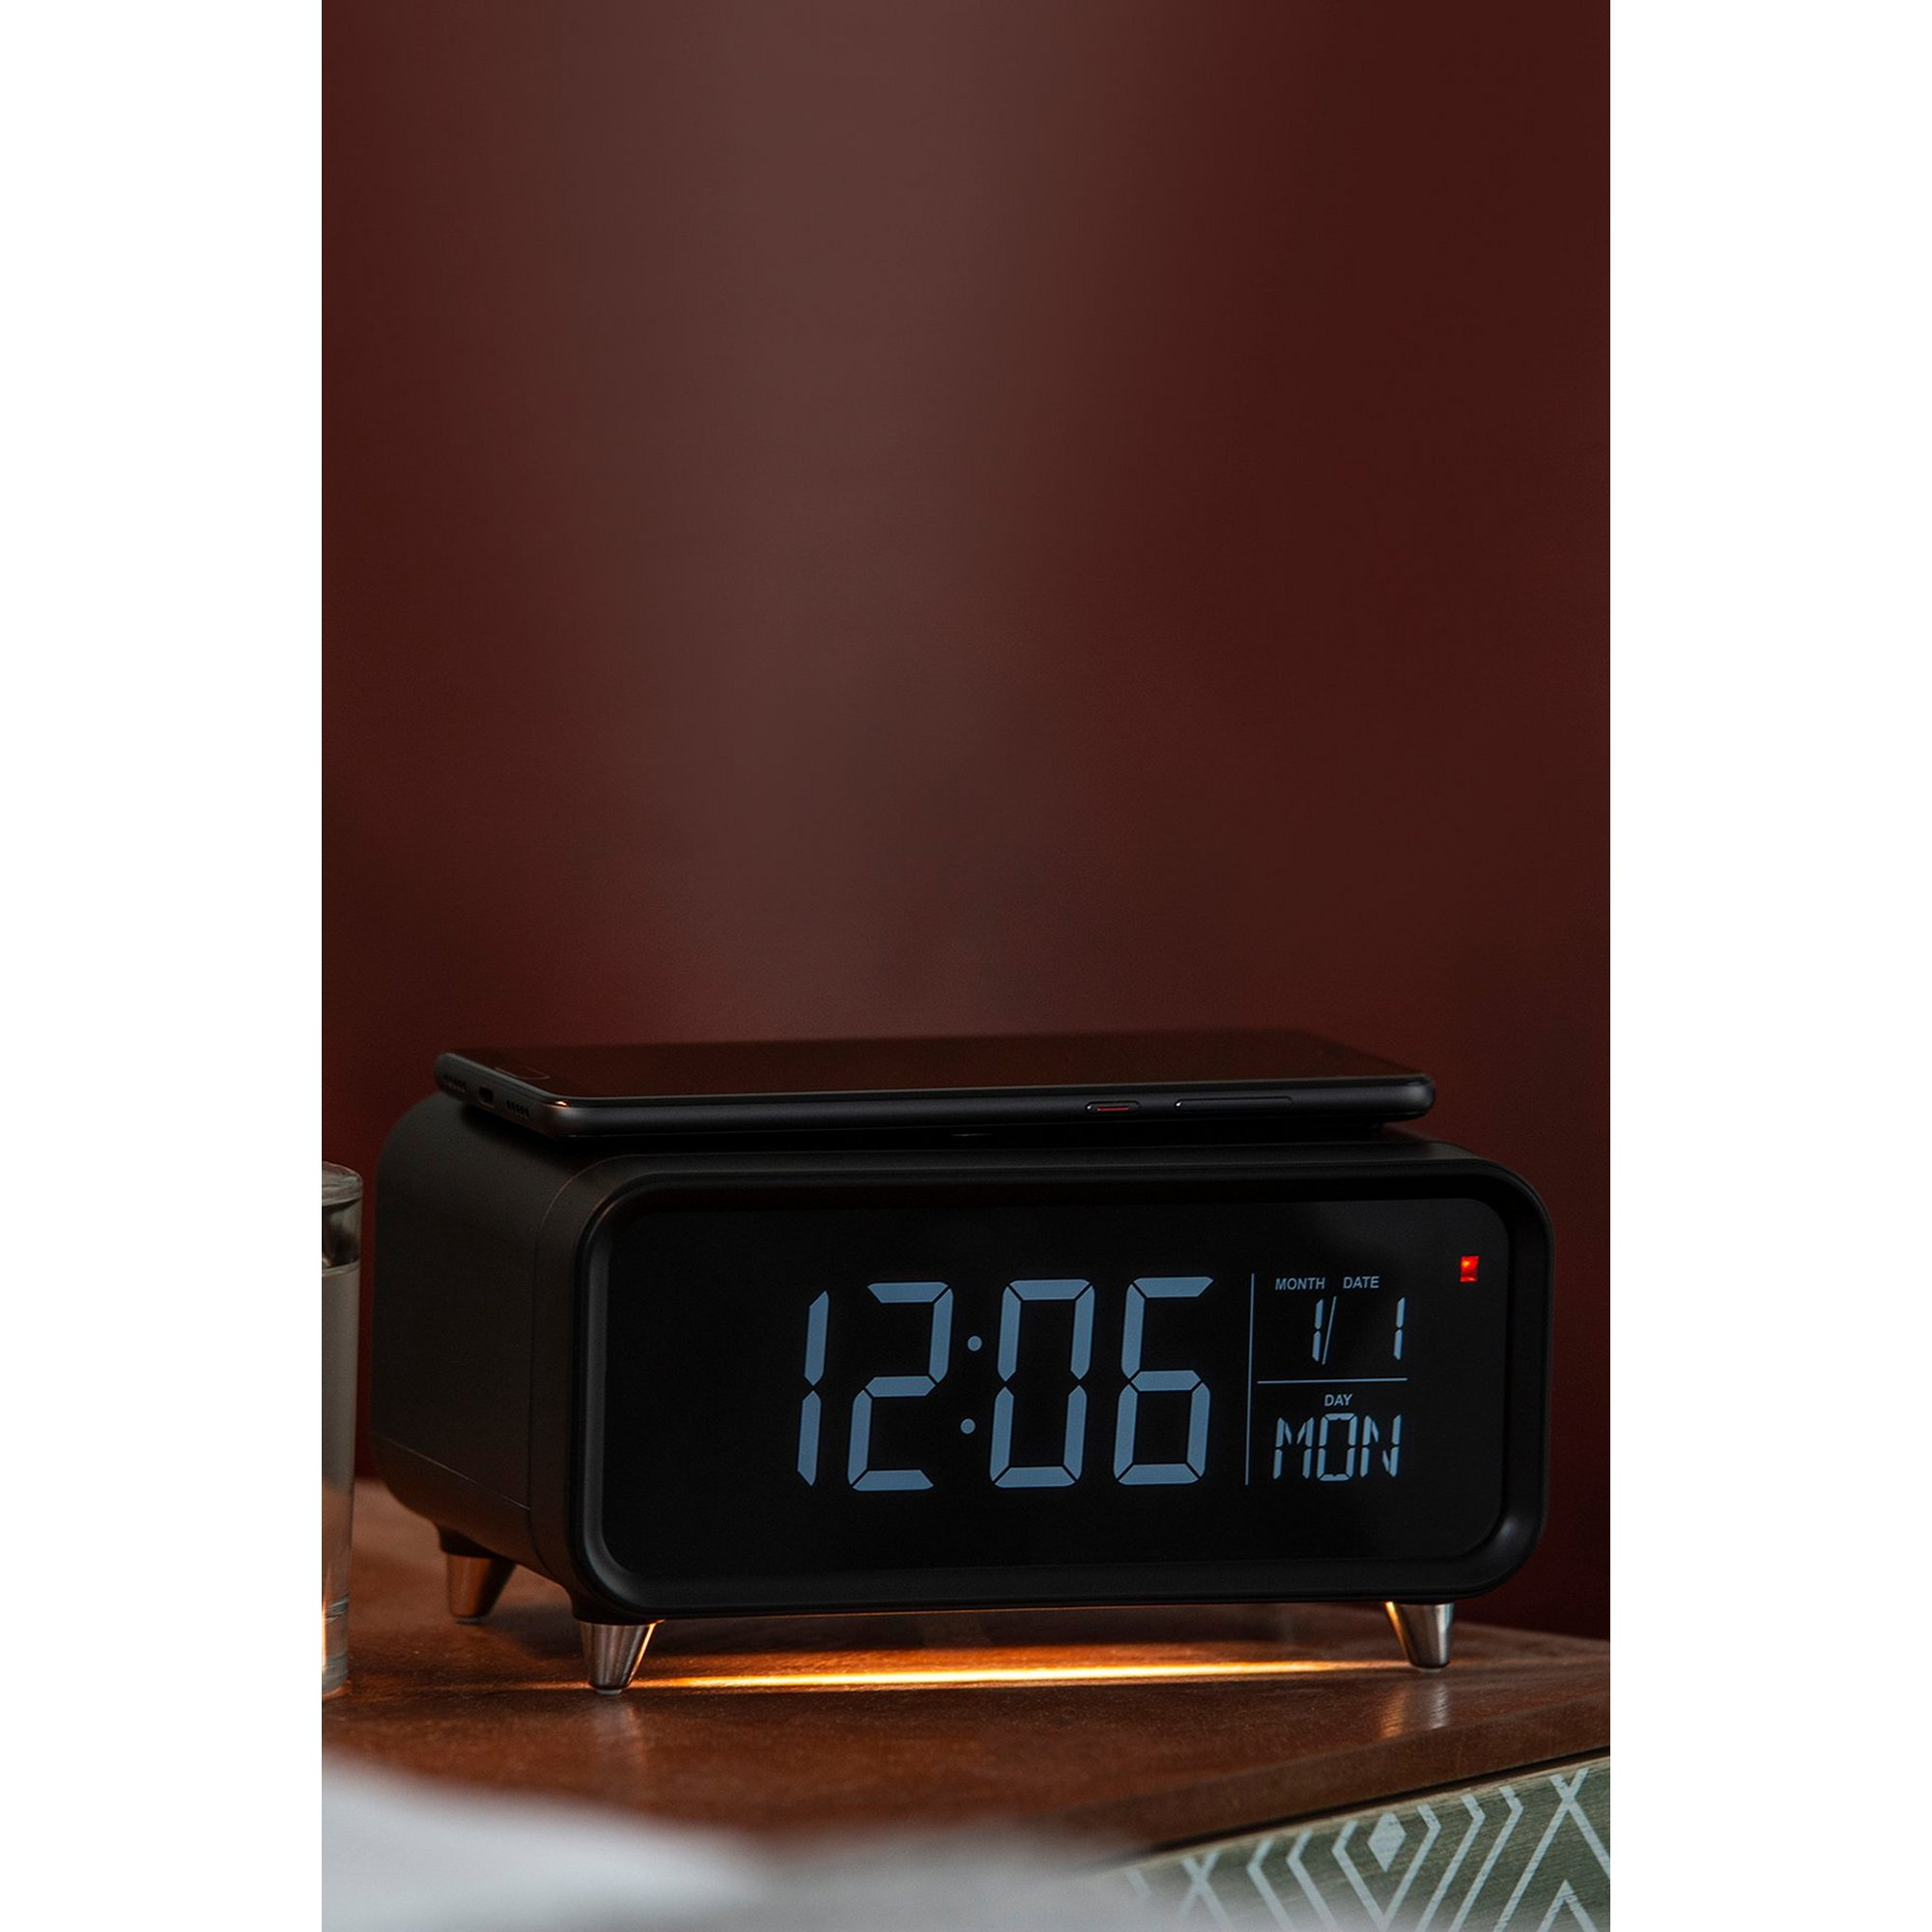 Image of Groov-e Athena Alarm Clock with Wireless Charging Pad and Night Light